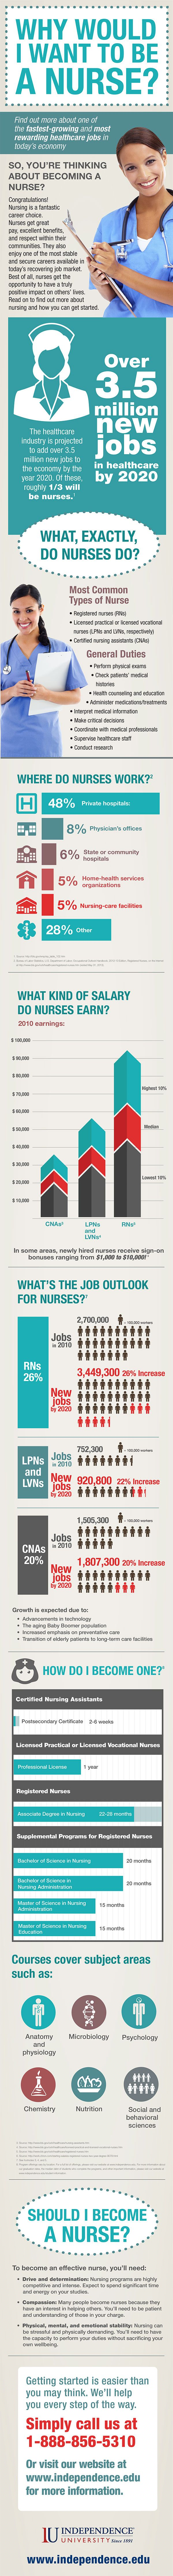 Why Would I Want To Be A Nurse?   Infographic For Health Science Students